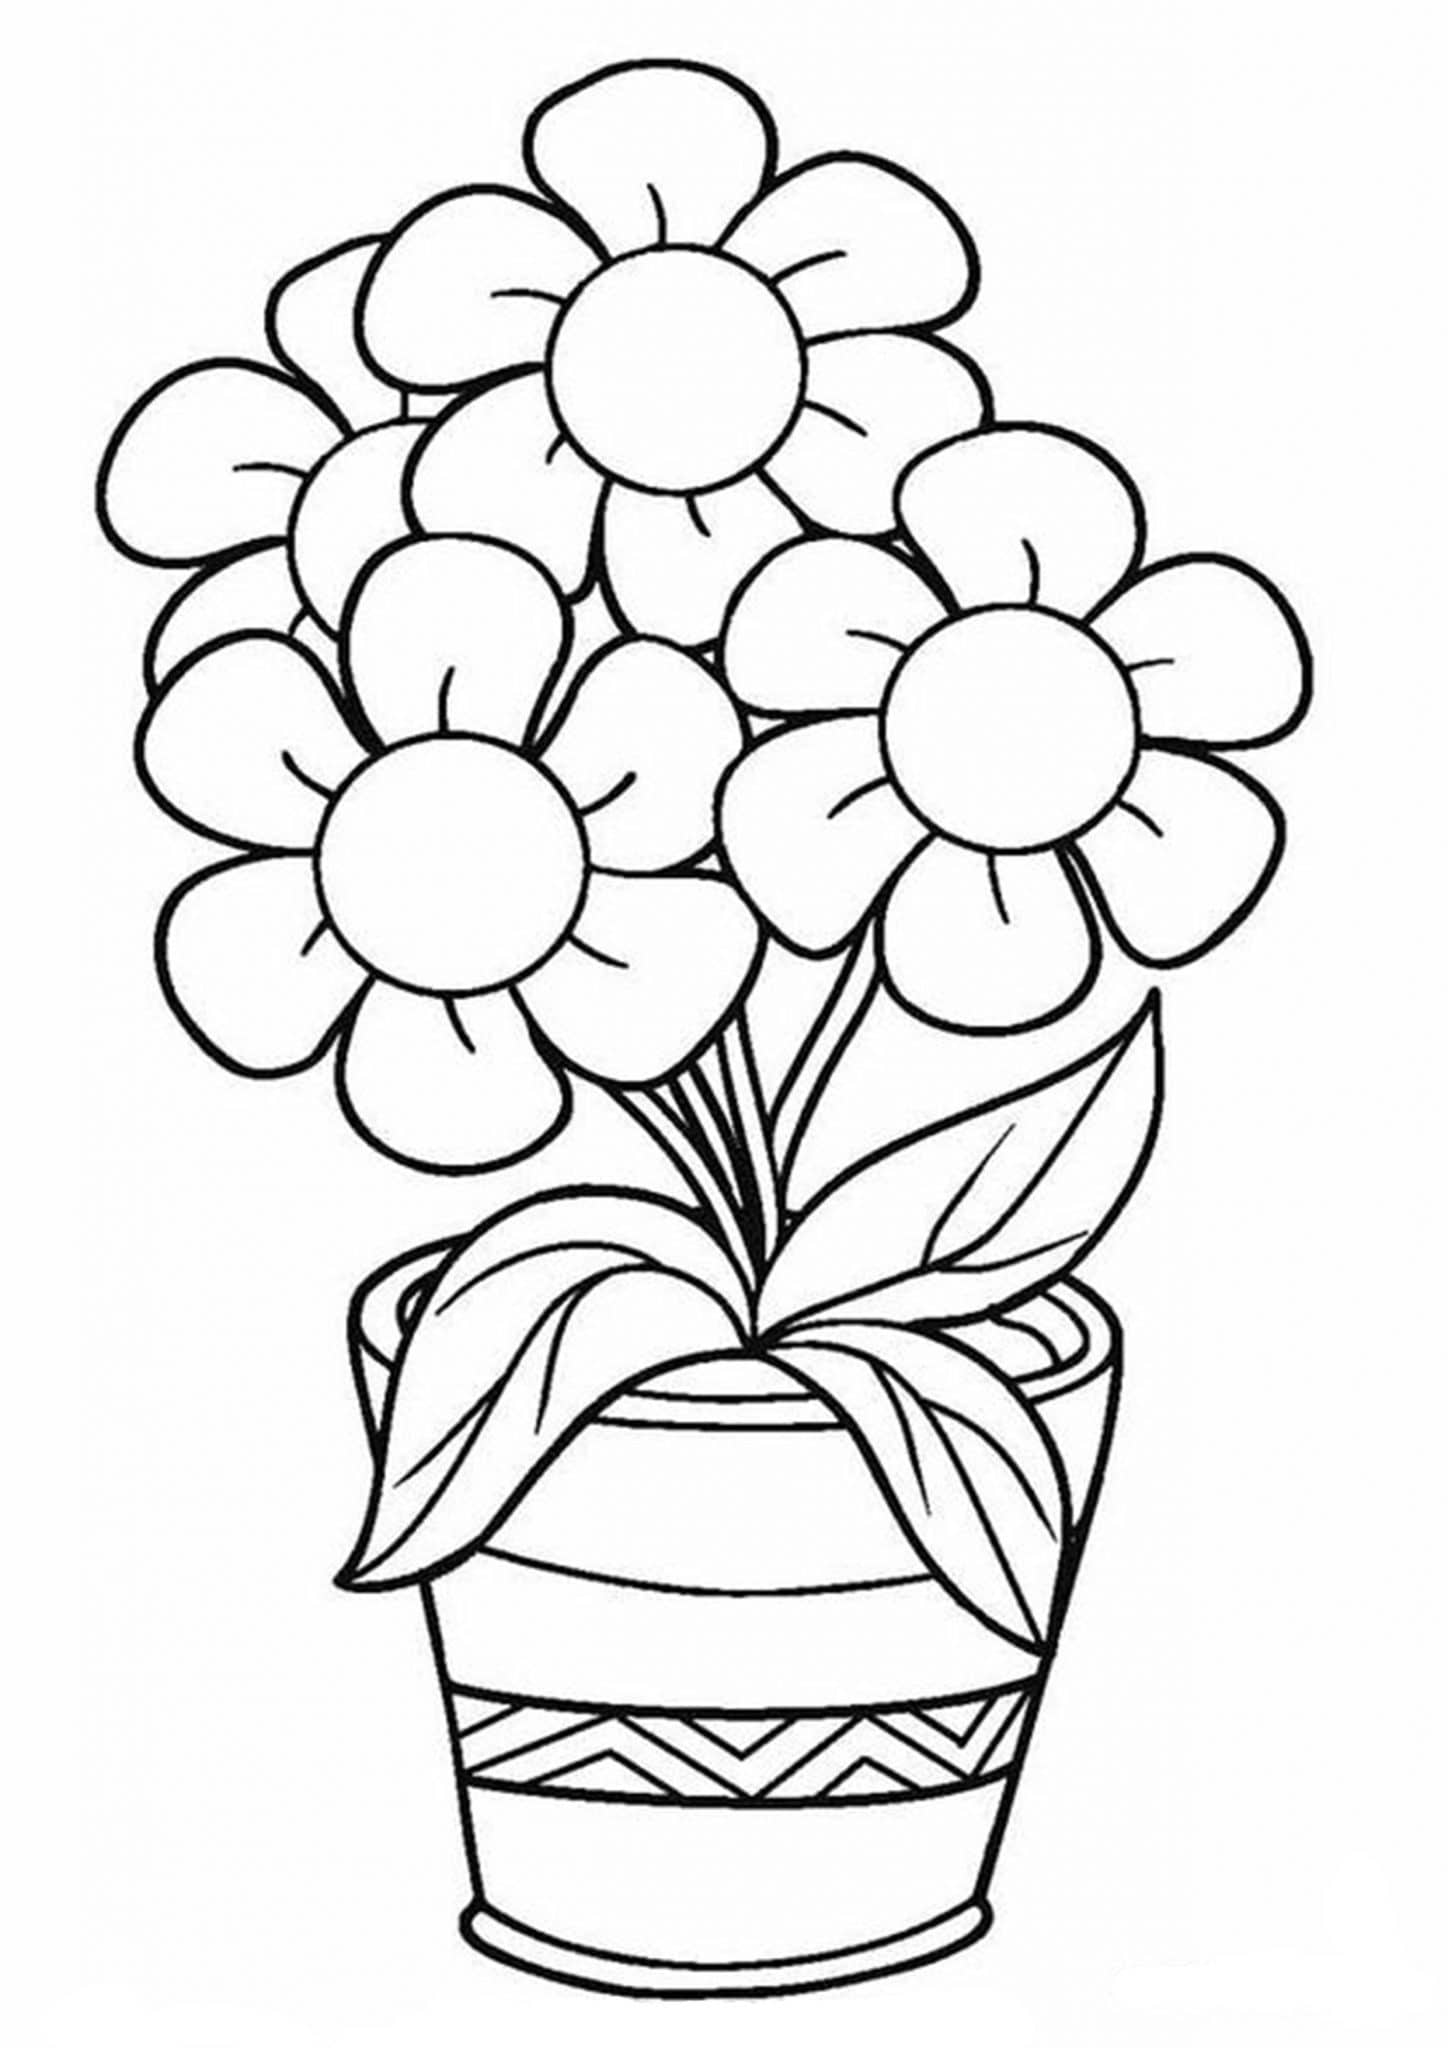 free printable flowers to color free printable beautiful flowers coloring page for kids flowers free printable color to